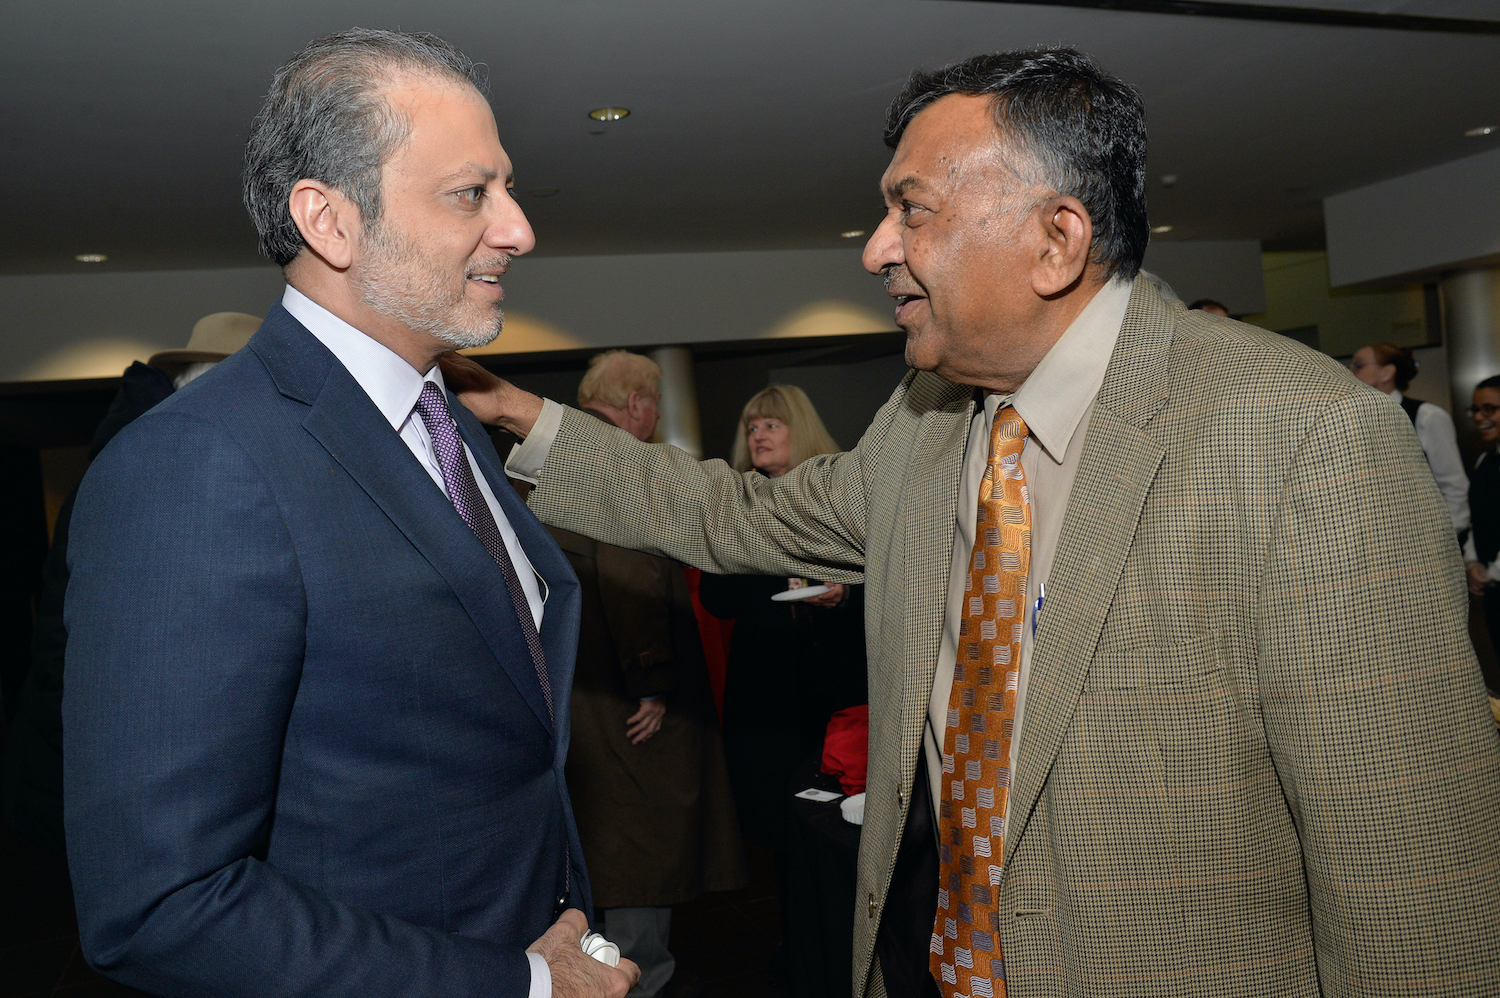 Gujavarty and Bharara